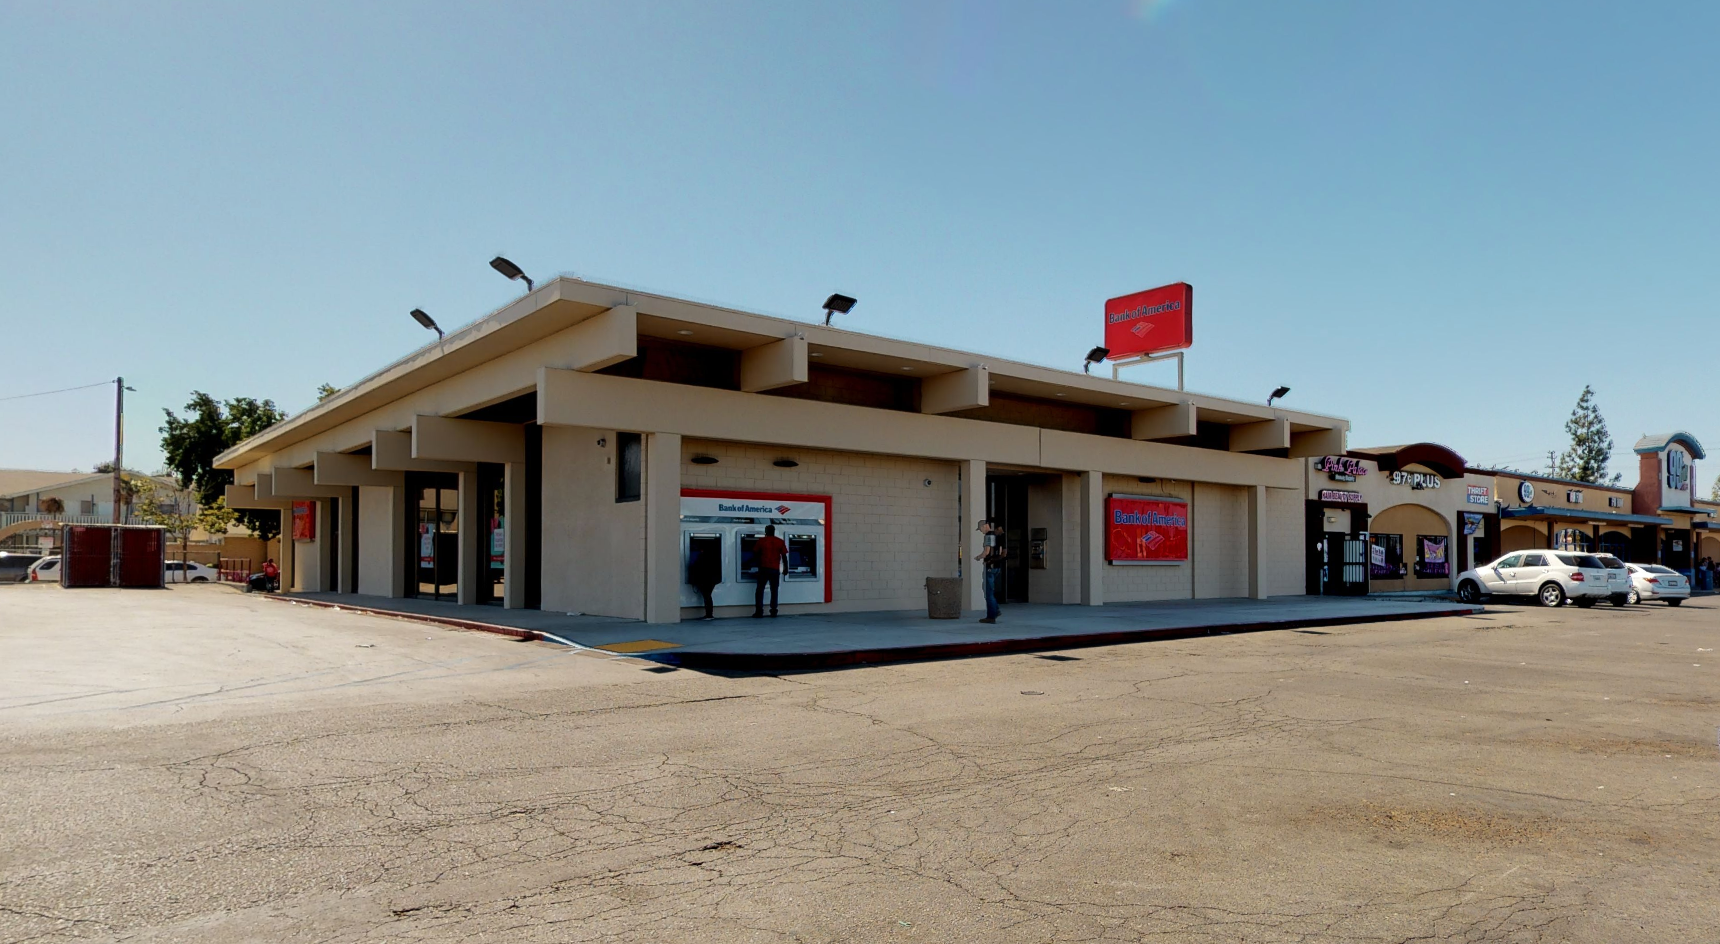 Bank of America financial center with walk-up ATM | 1111 W Shields Ave, Fresno, CA 93705